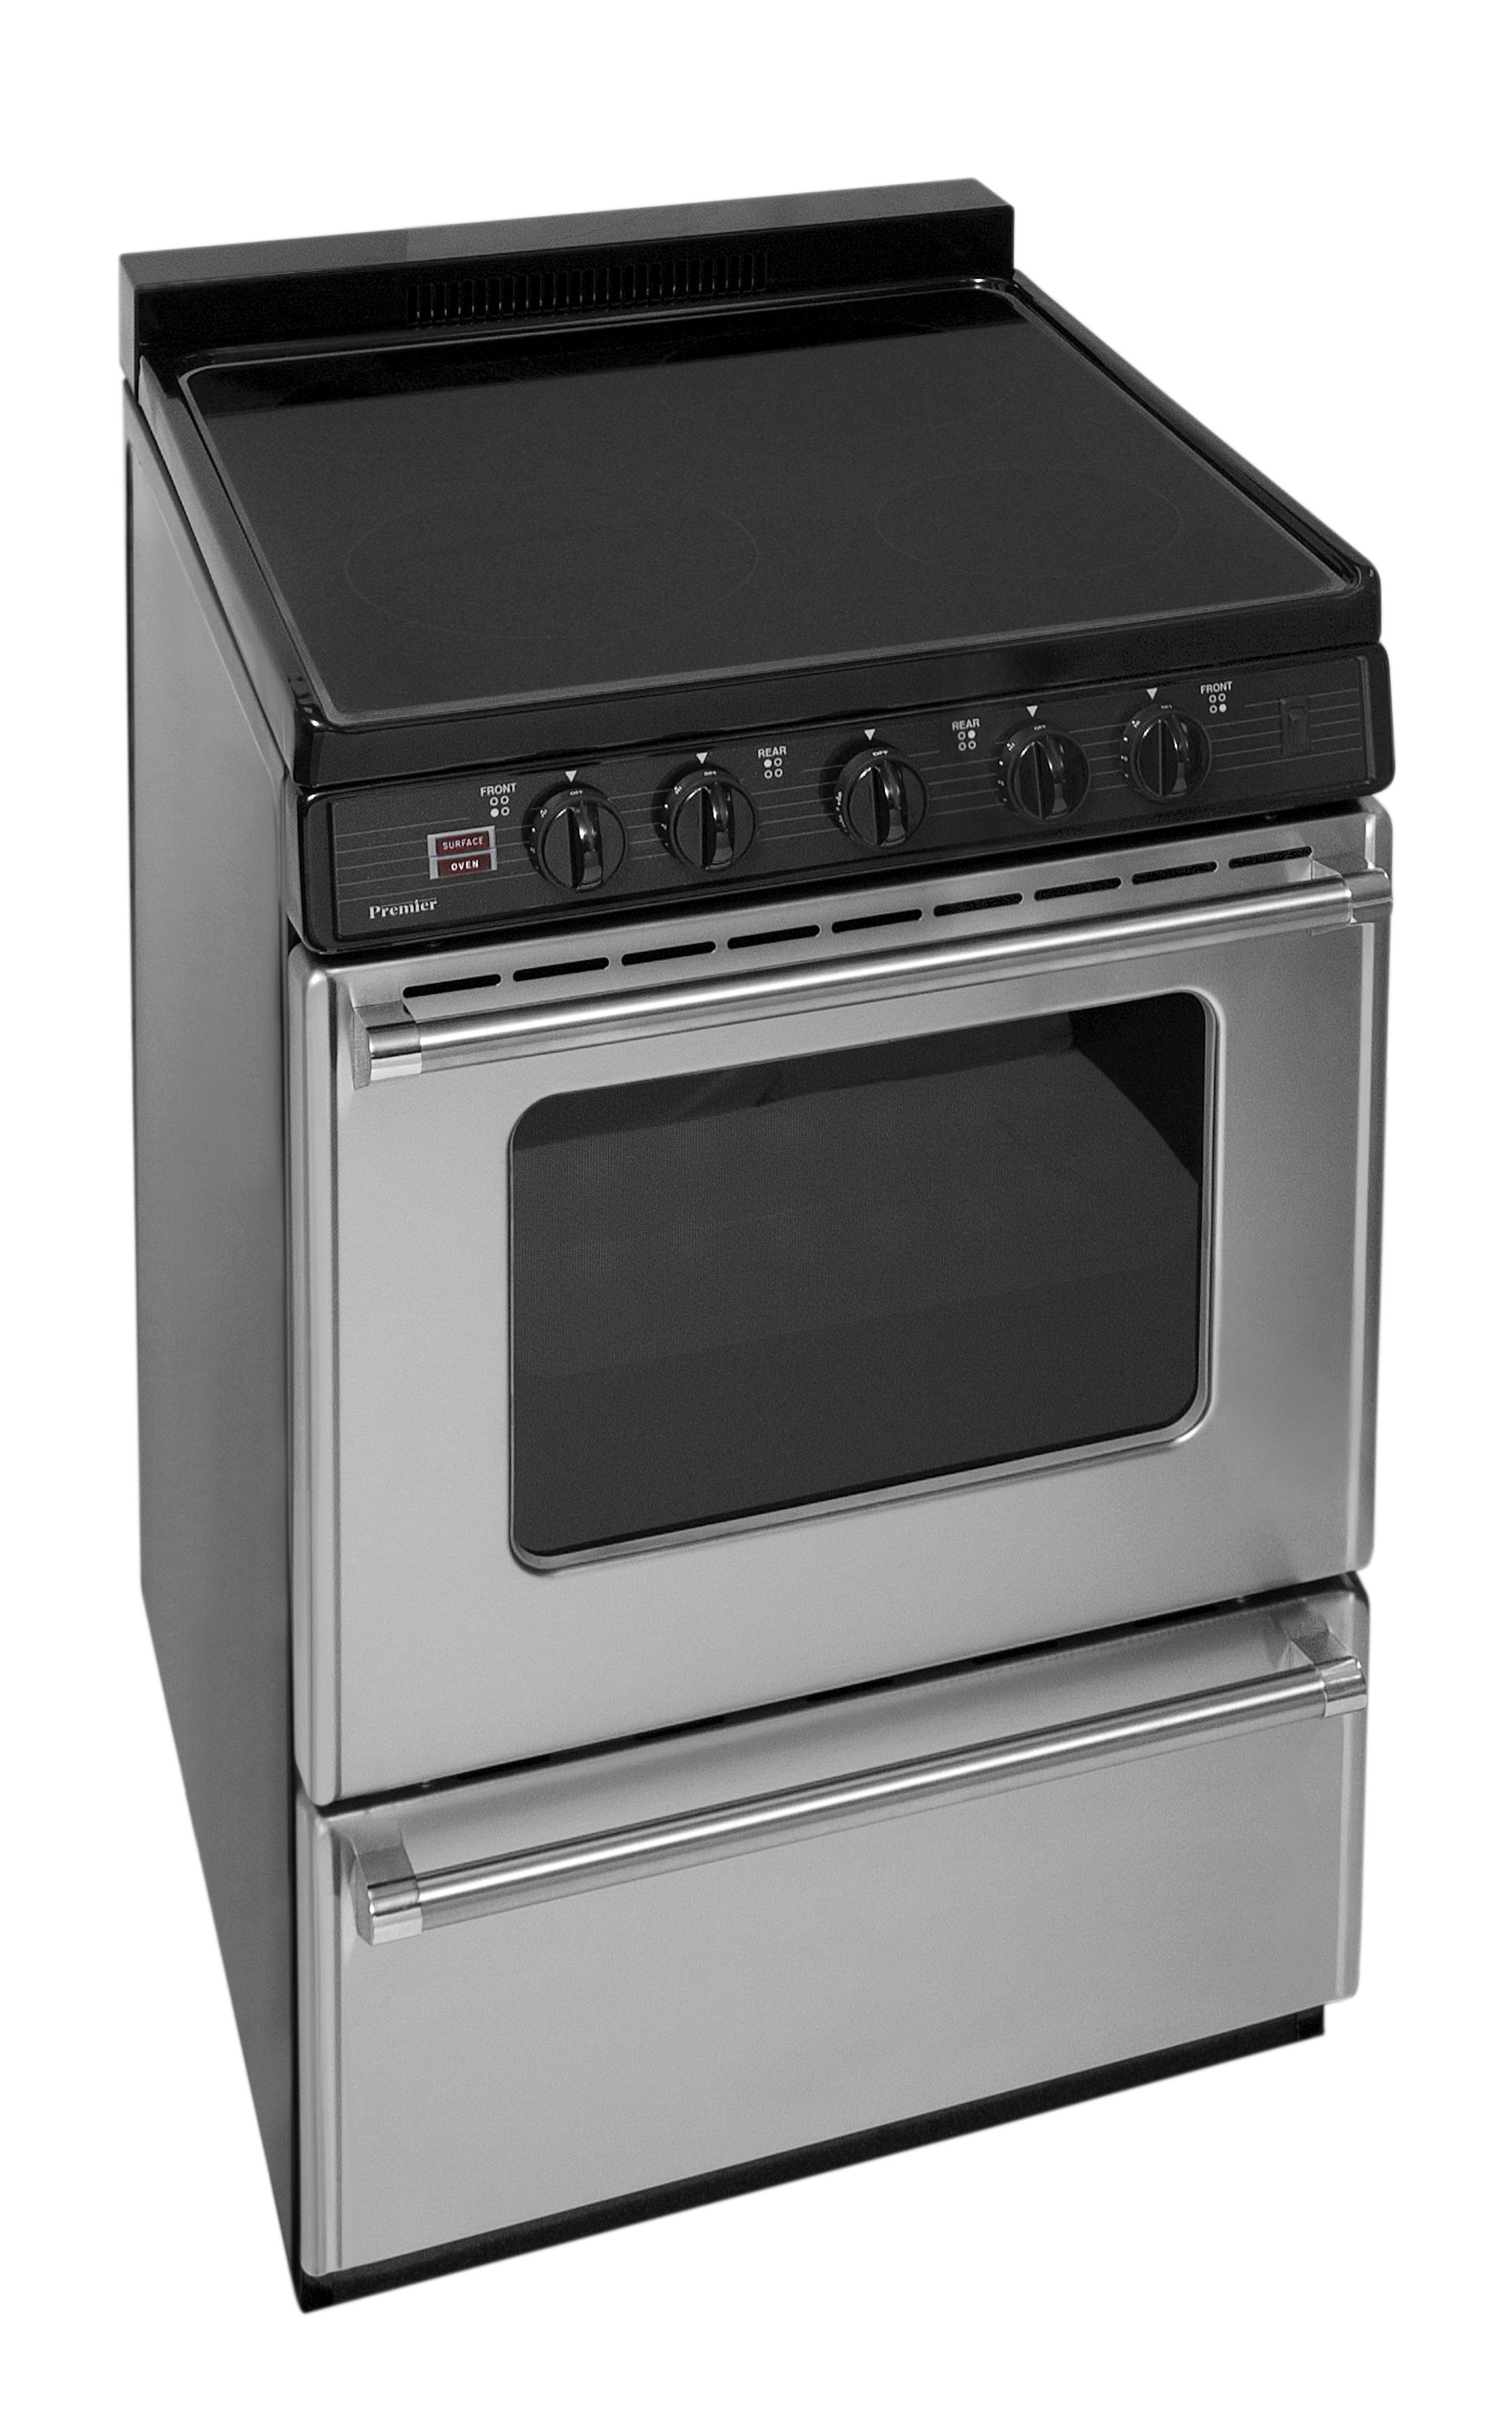 b5add375a53 Premier 24 in. Freestanding Smooth Top Electric Range in Stainless Steel